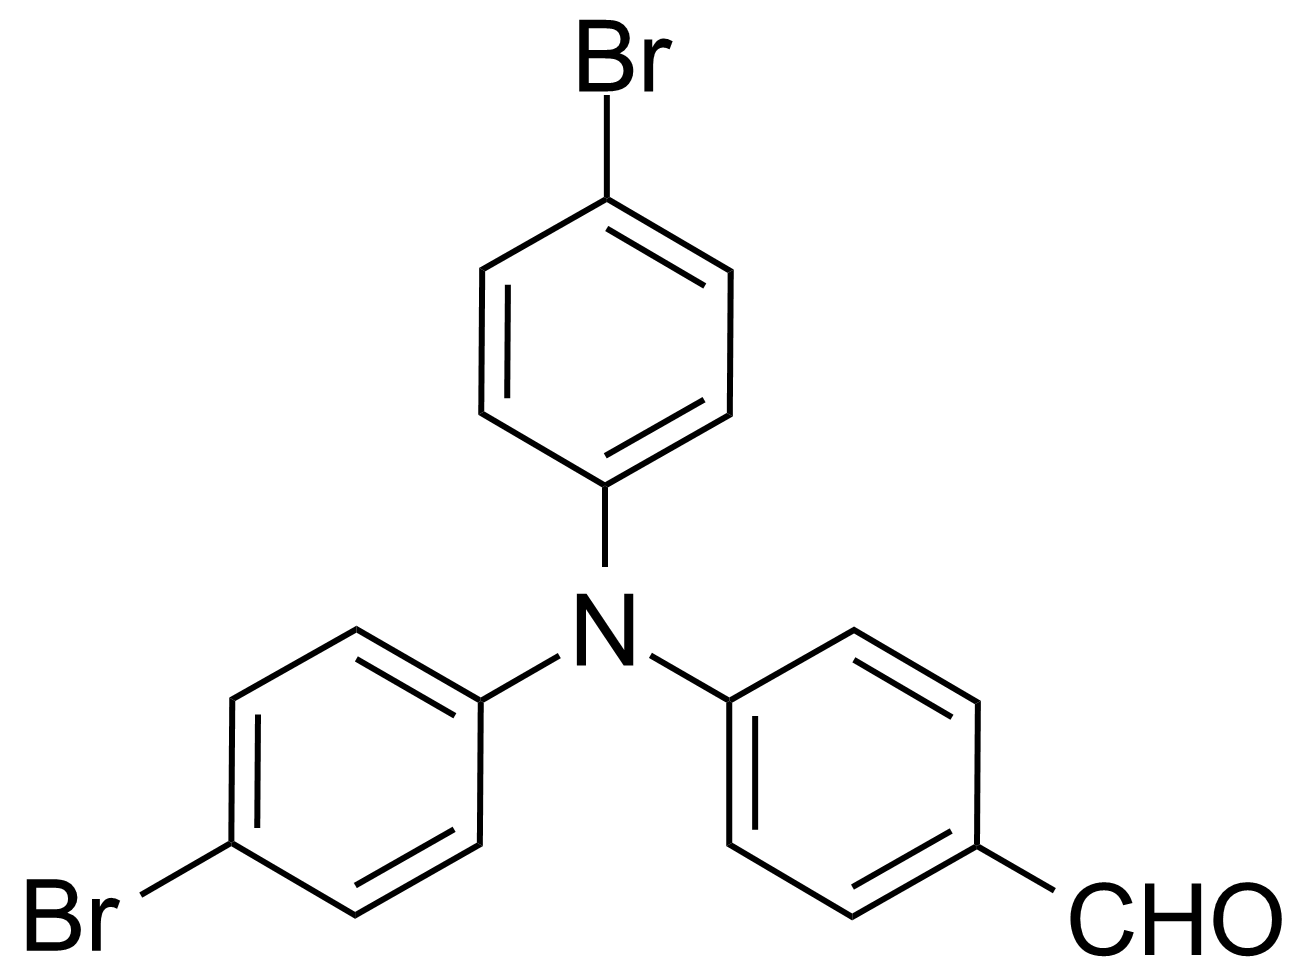 Structure of 4-[Bis-(4-bromophenyl)amino]benzaldehyde